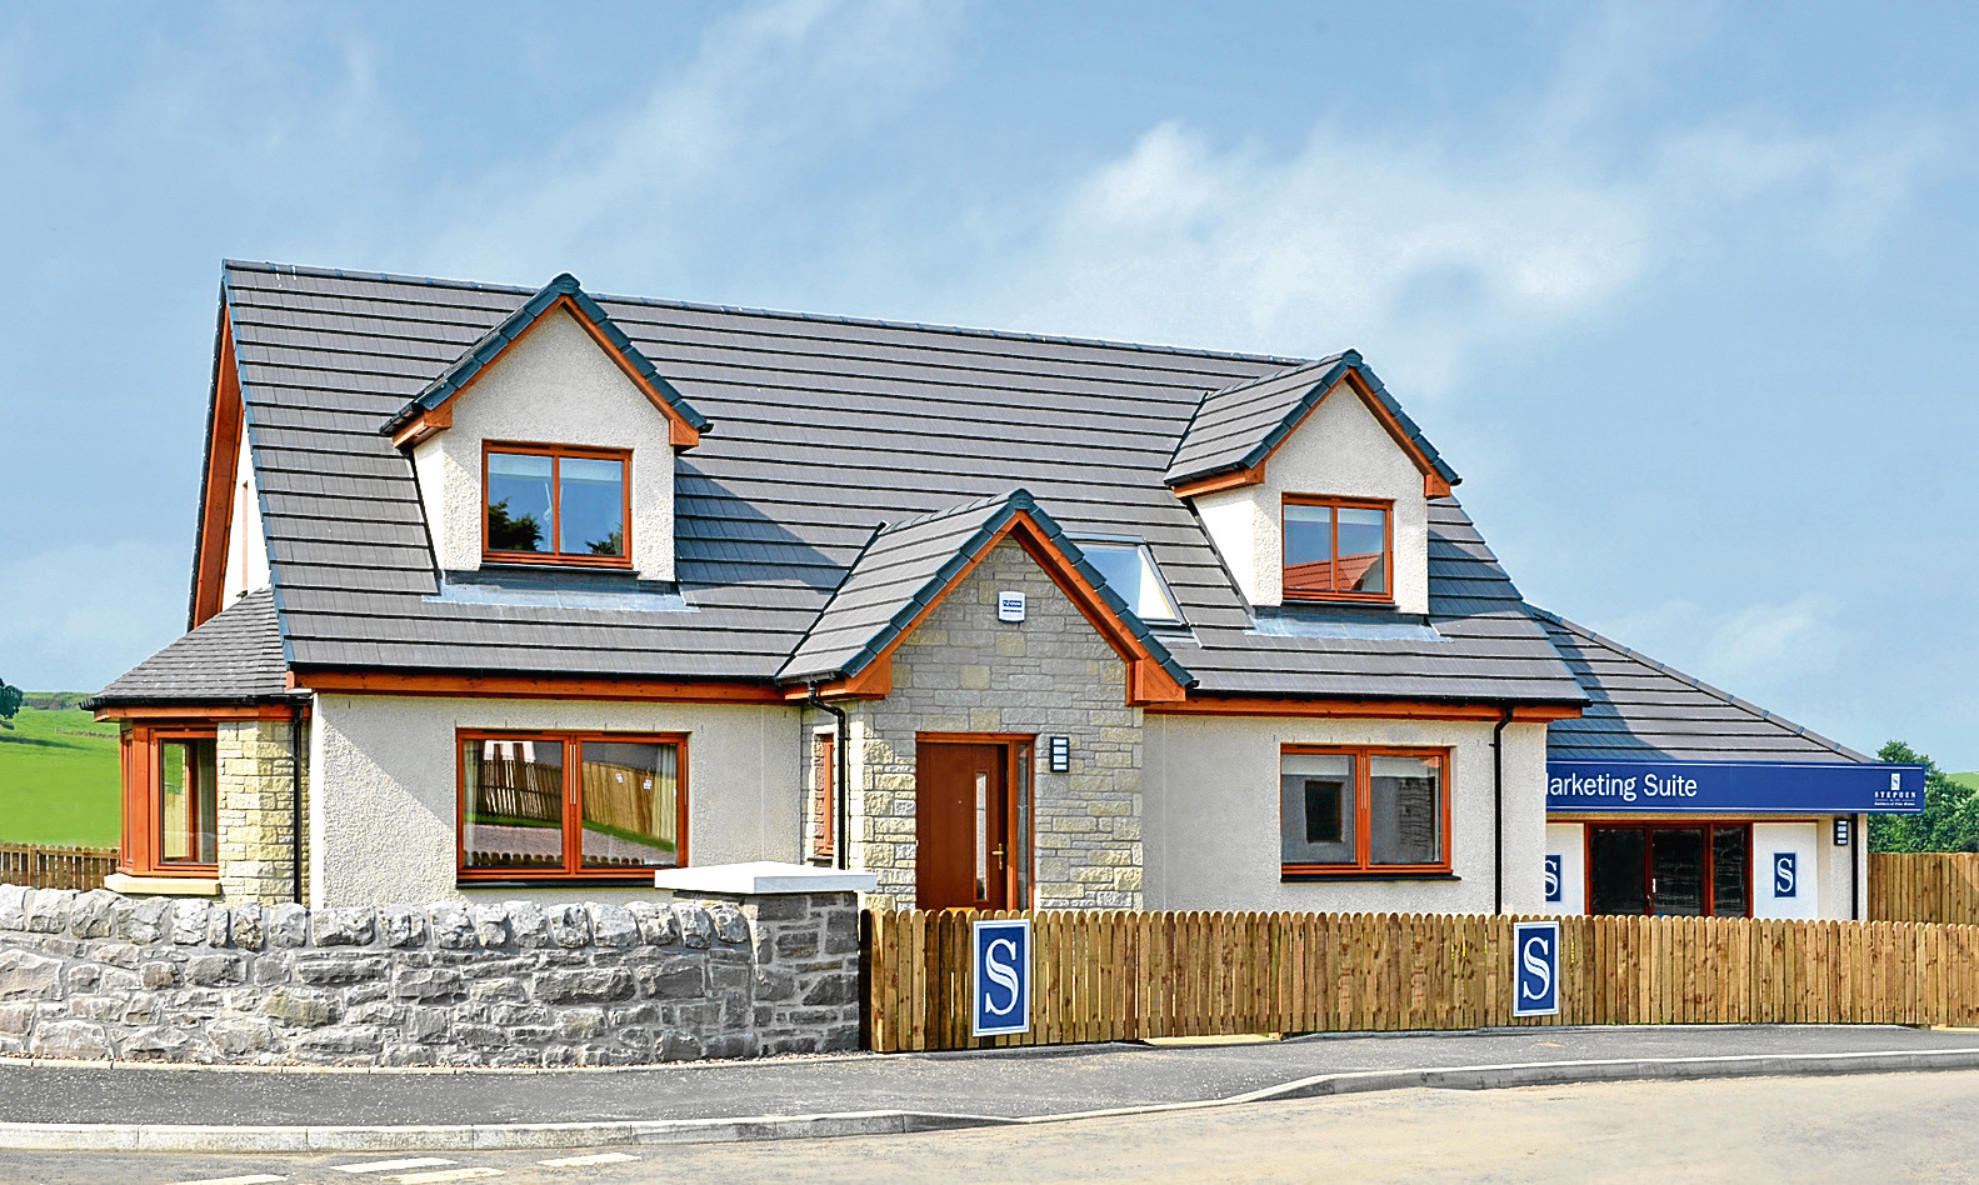 Family-owned Stephen has been building homes for more than 80 years